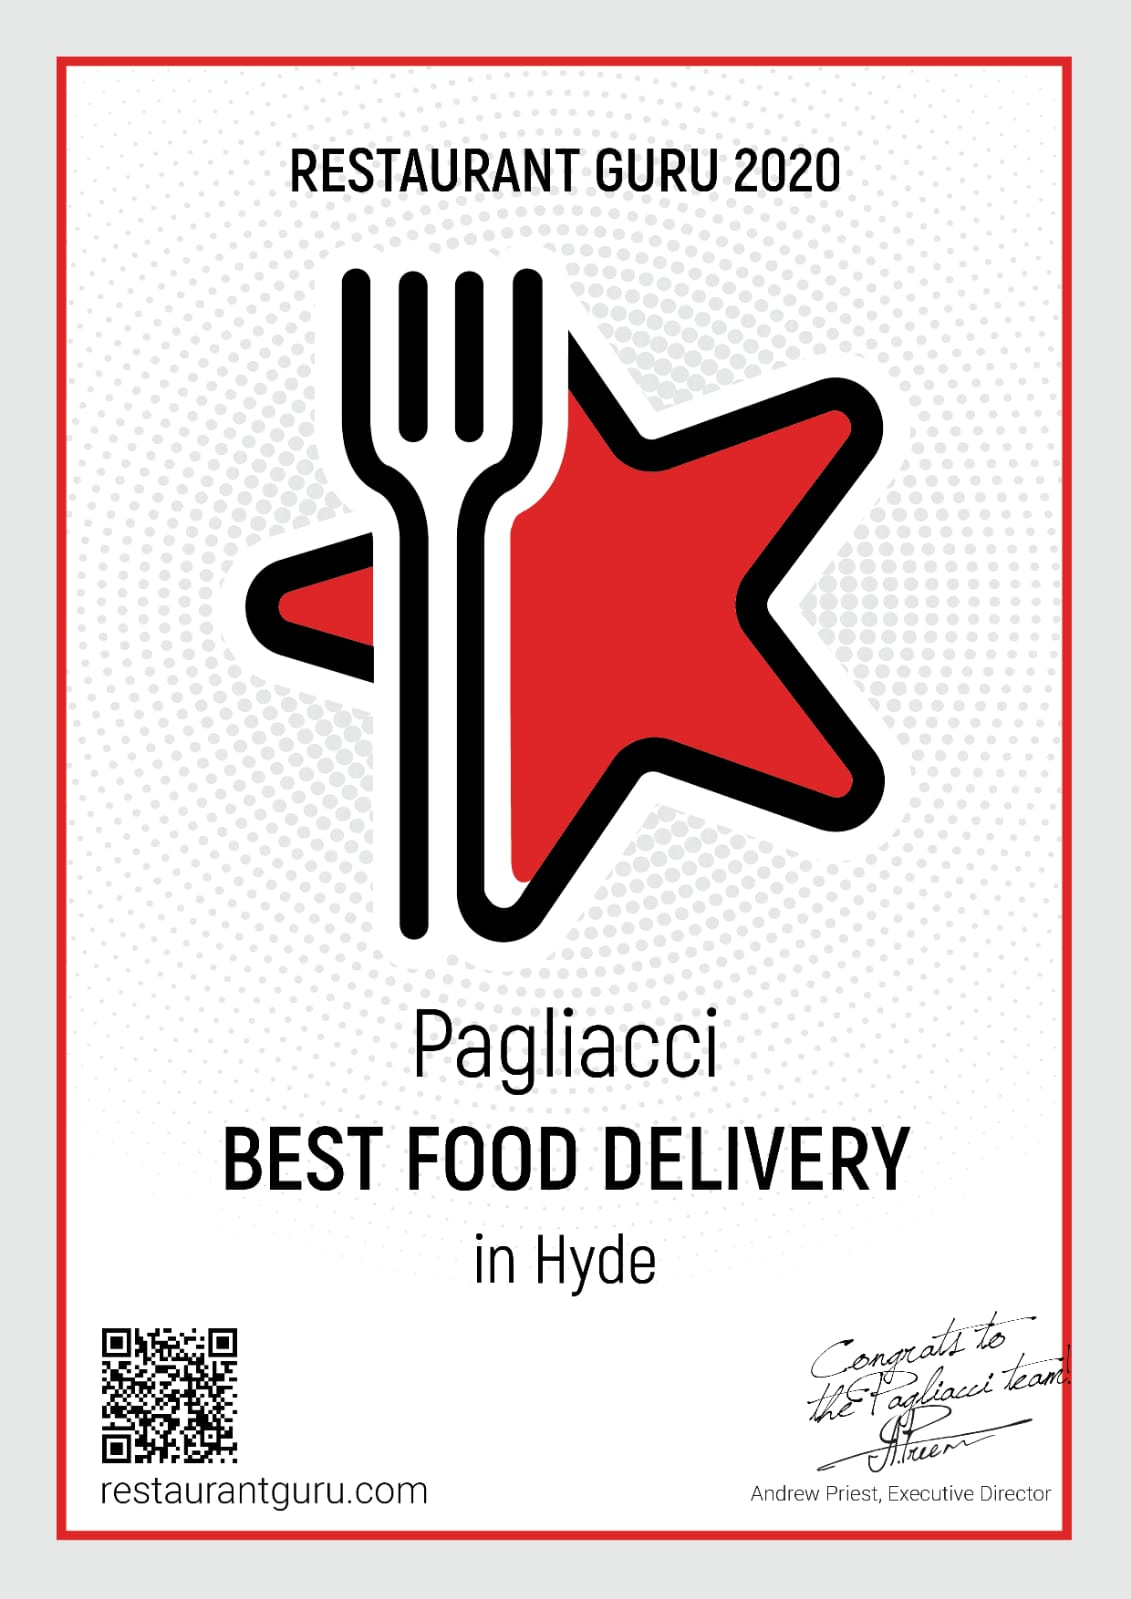 Pagliacci Restaurant - Best Food Delivery in Hyde